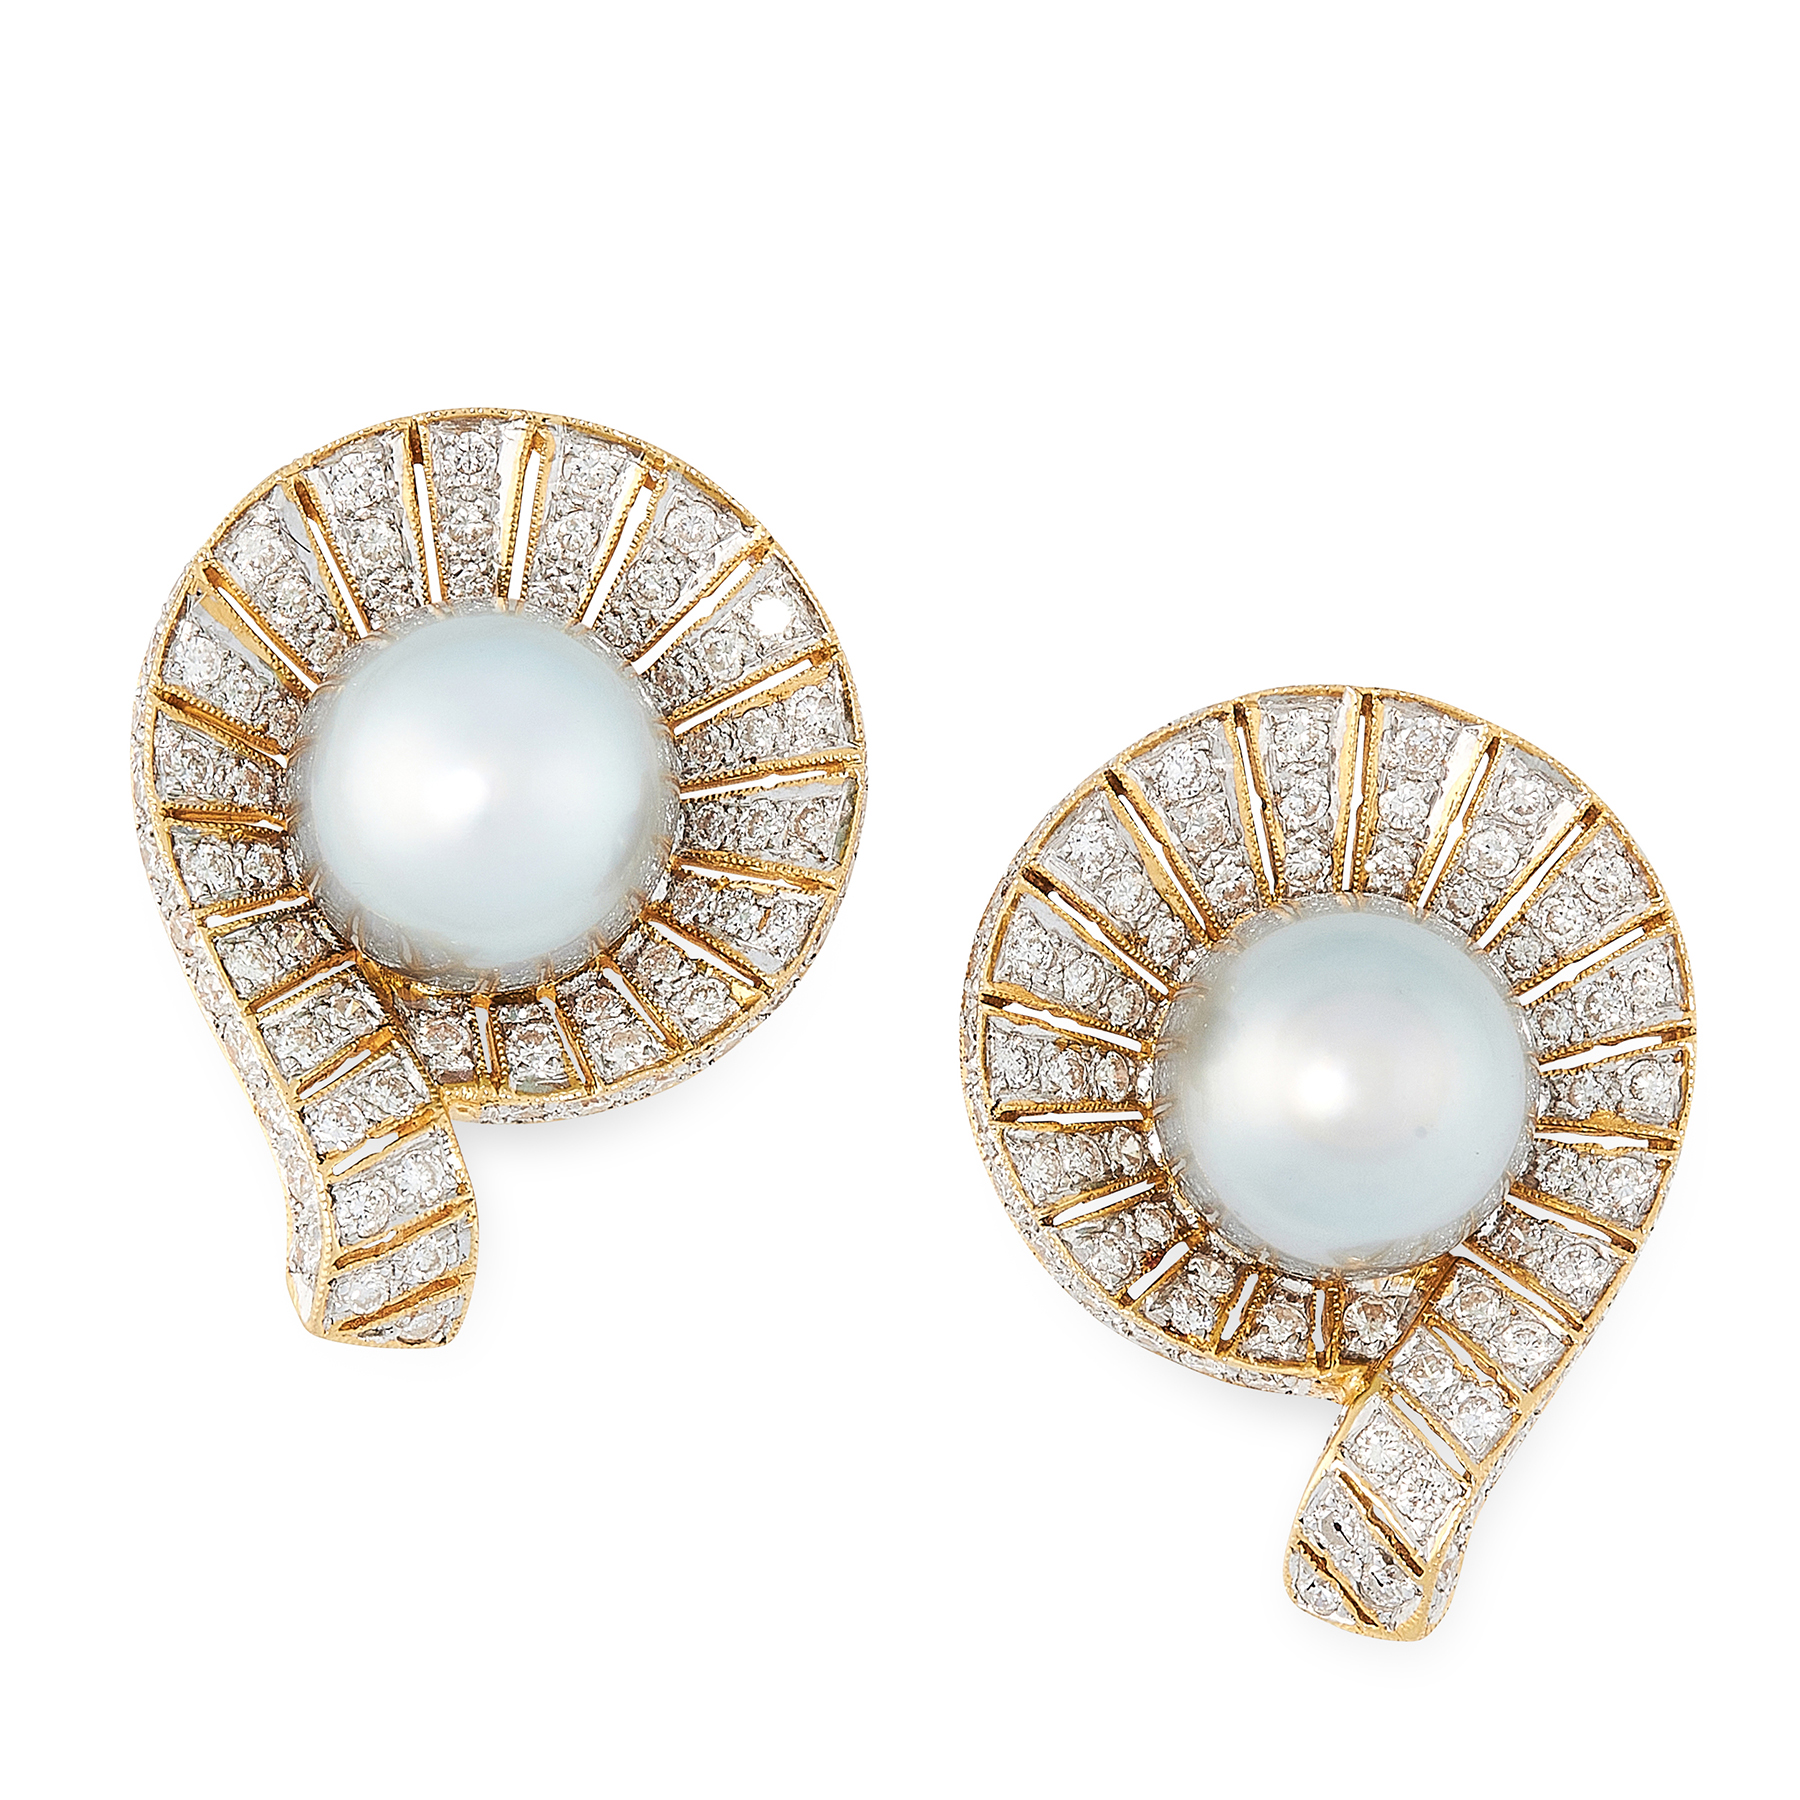 Lot 9 - A PAIR OF PEARL AND DIAMOND STUD EARRINGS in 18ct yellow gold, each set with a central grey pearl of